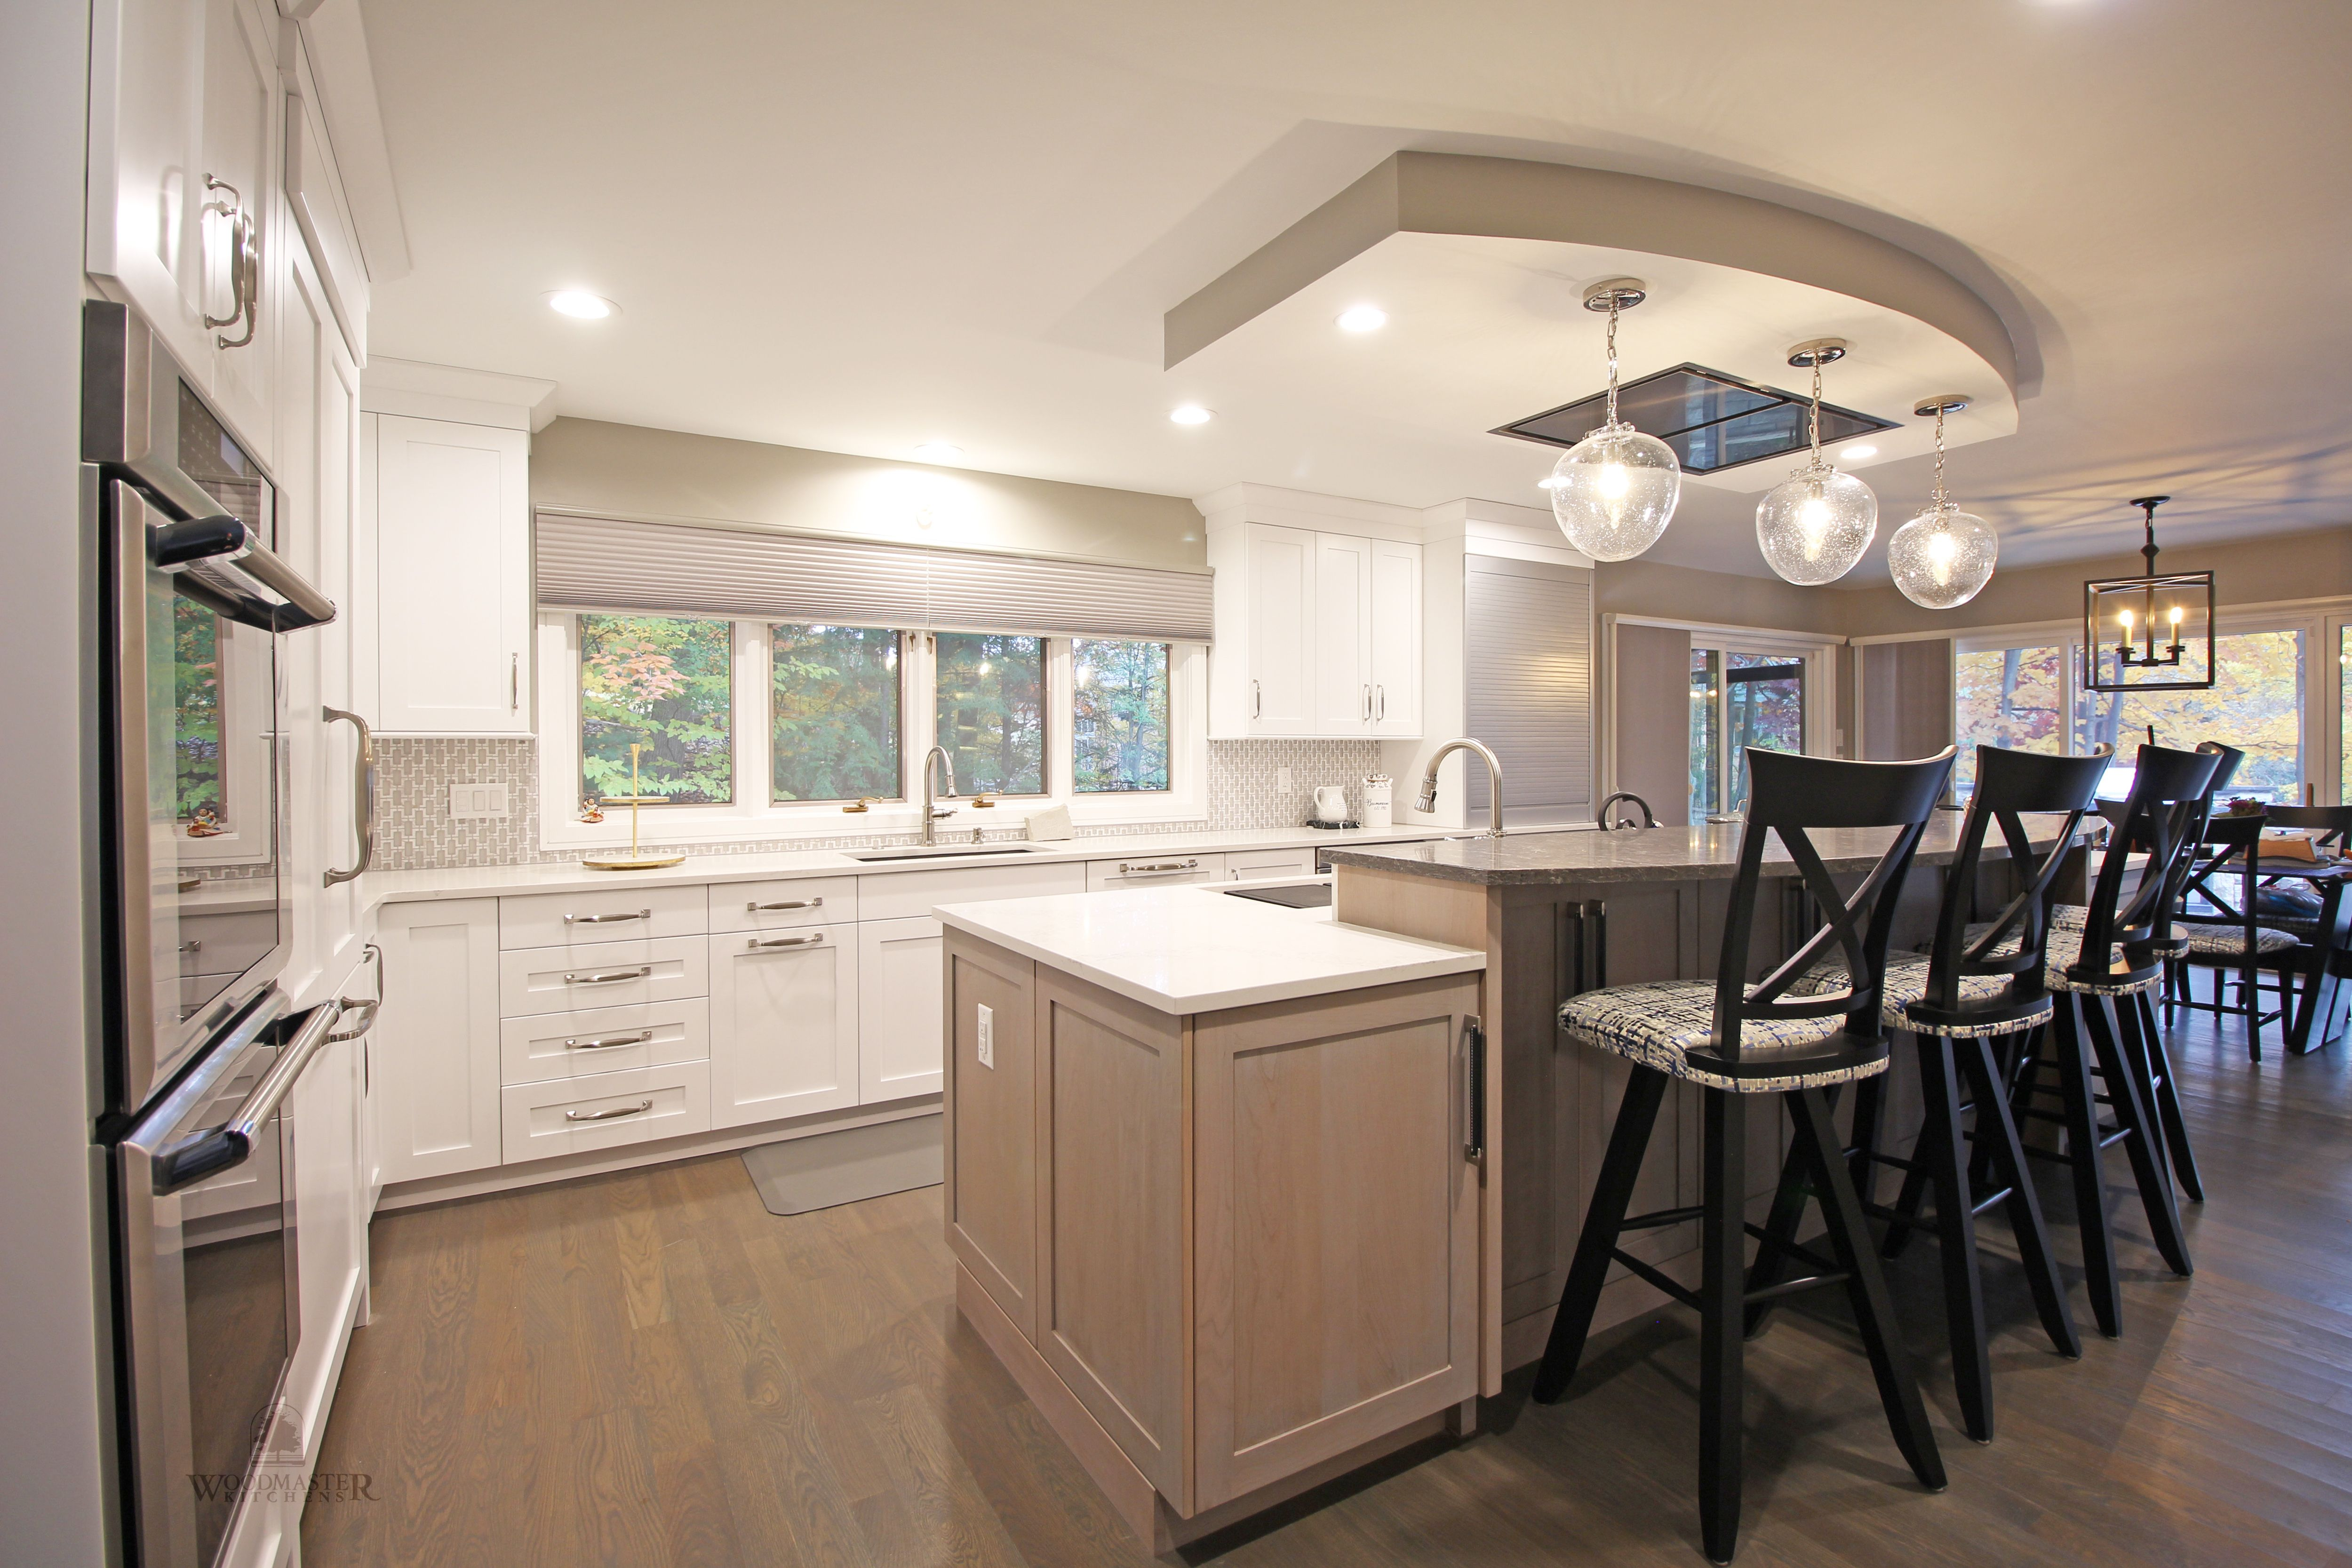 This Transitional Kitchen Design In Farmington Hills Was Done As Part Of A Home Remod Transitional Kitchen Design Bi Level Kitchen Island Large Kitchen Island